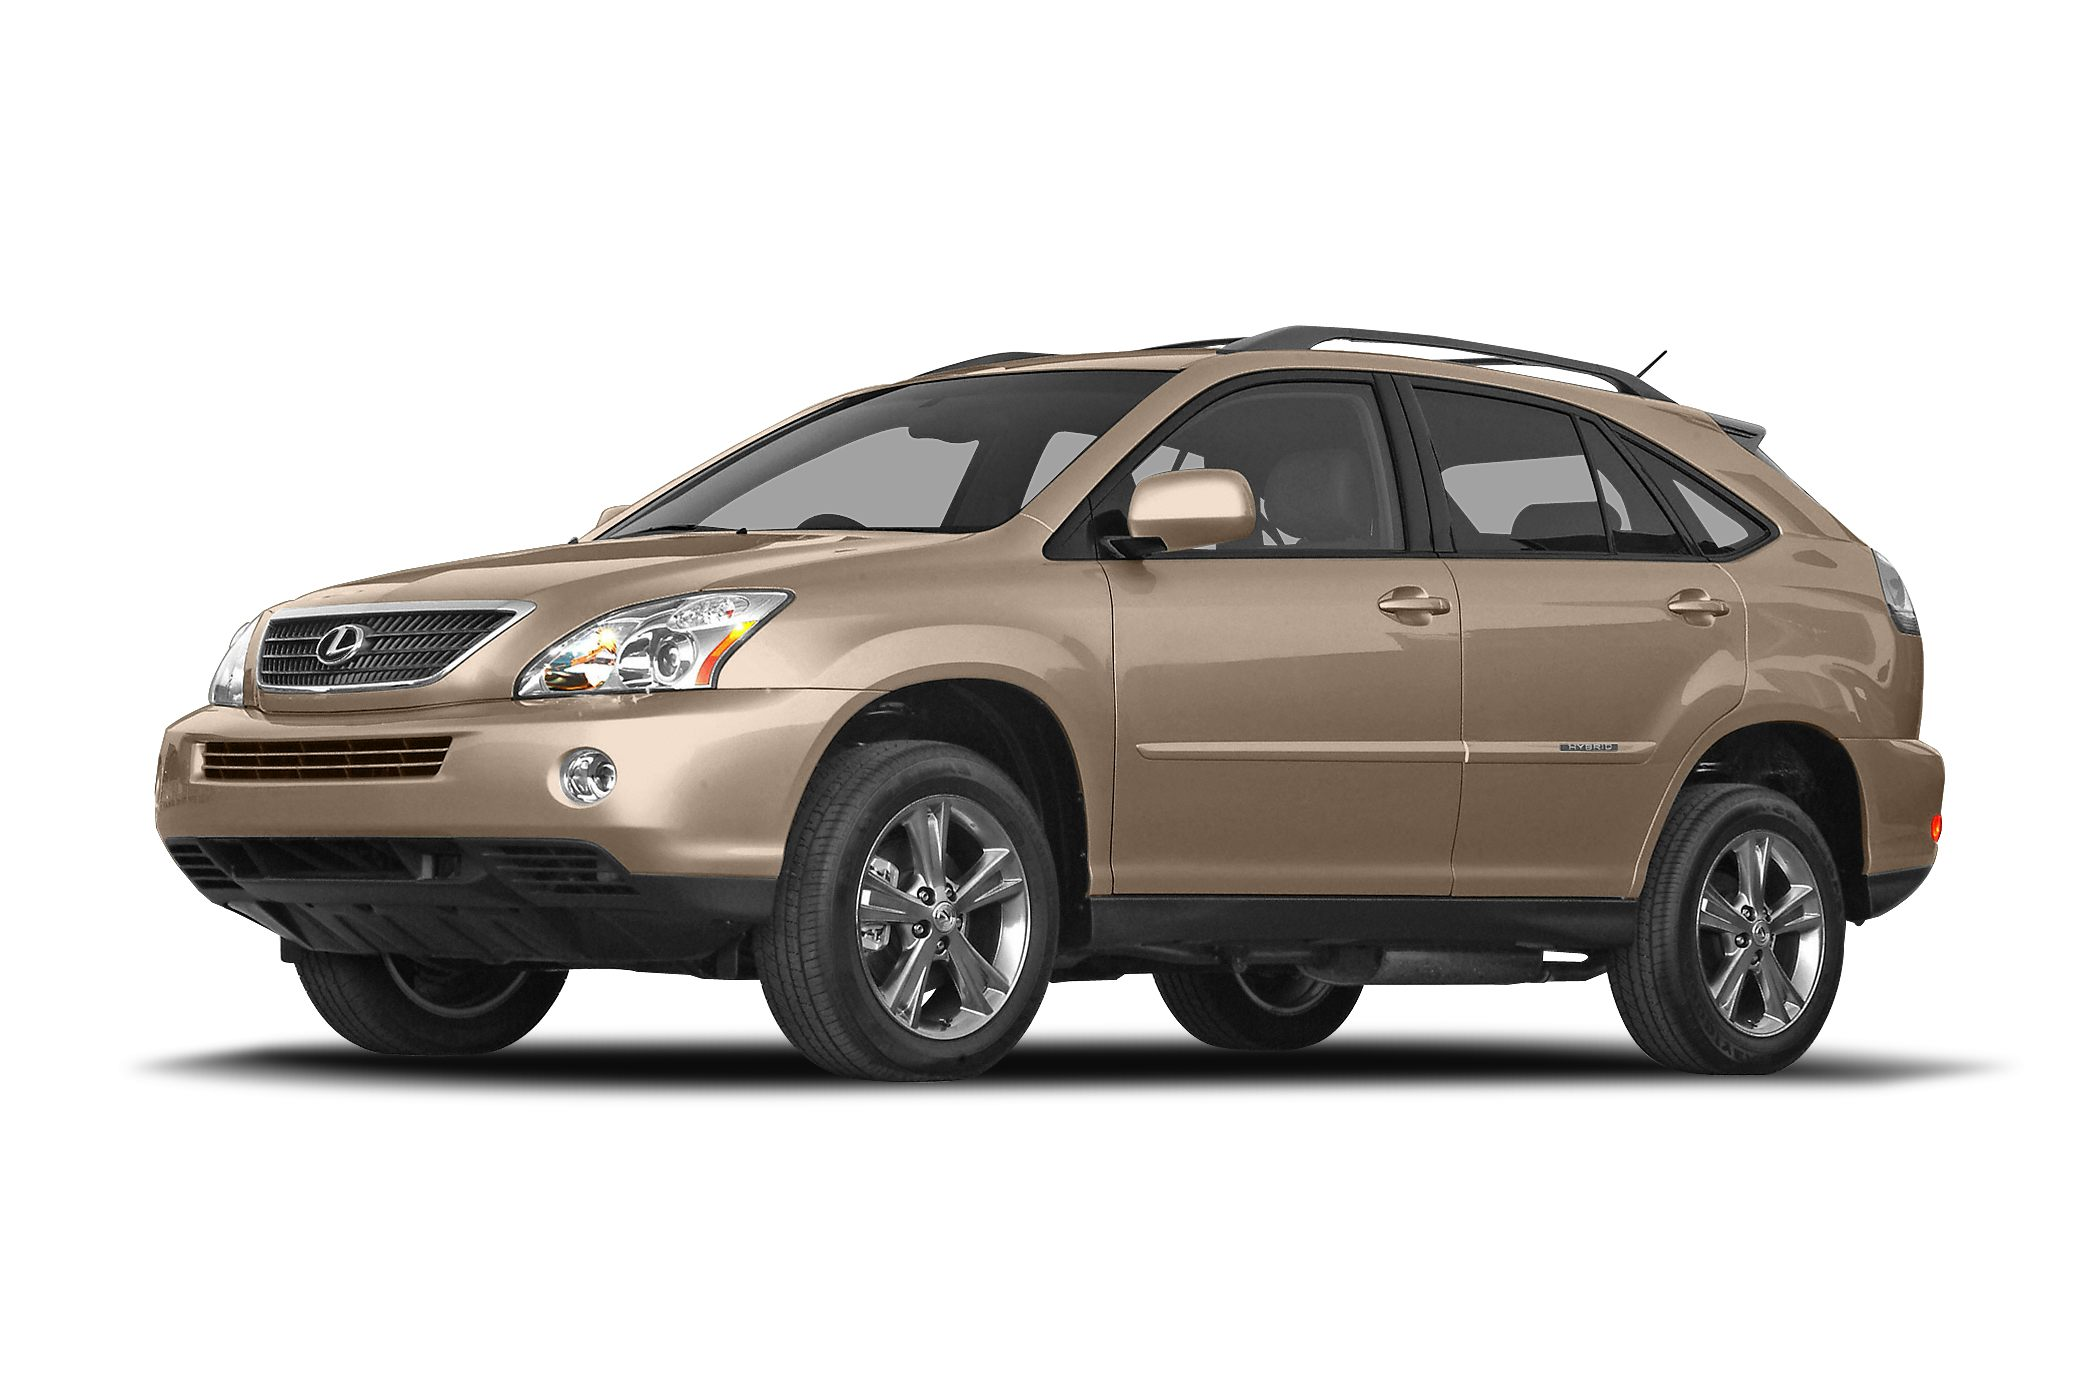 2008 Lexus RX 400h SUV for sale in Wilmington for $11,995 with 146,698 miles